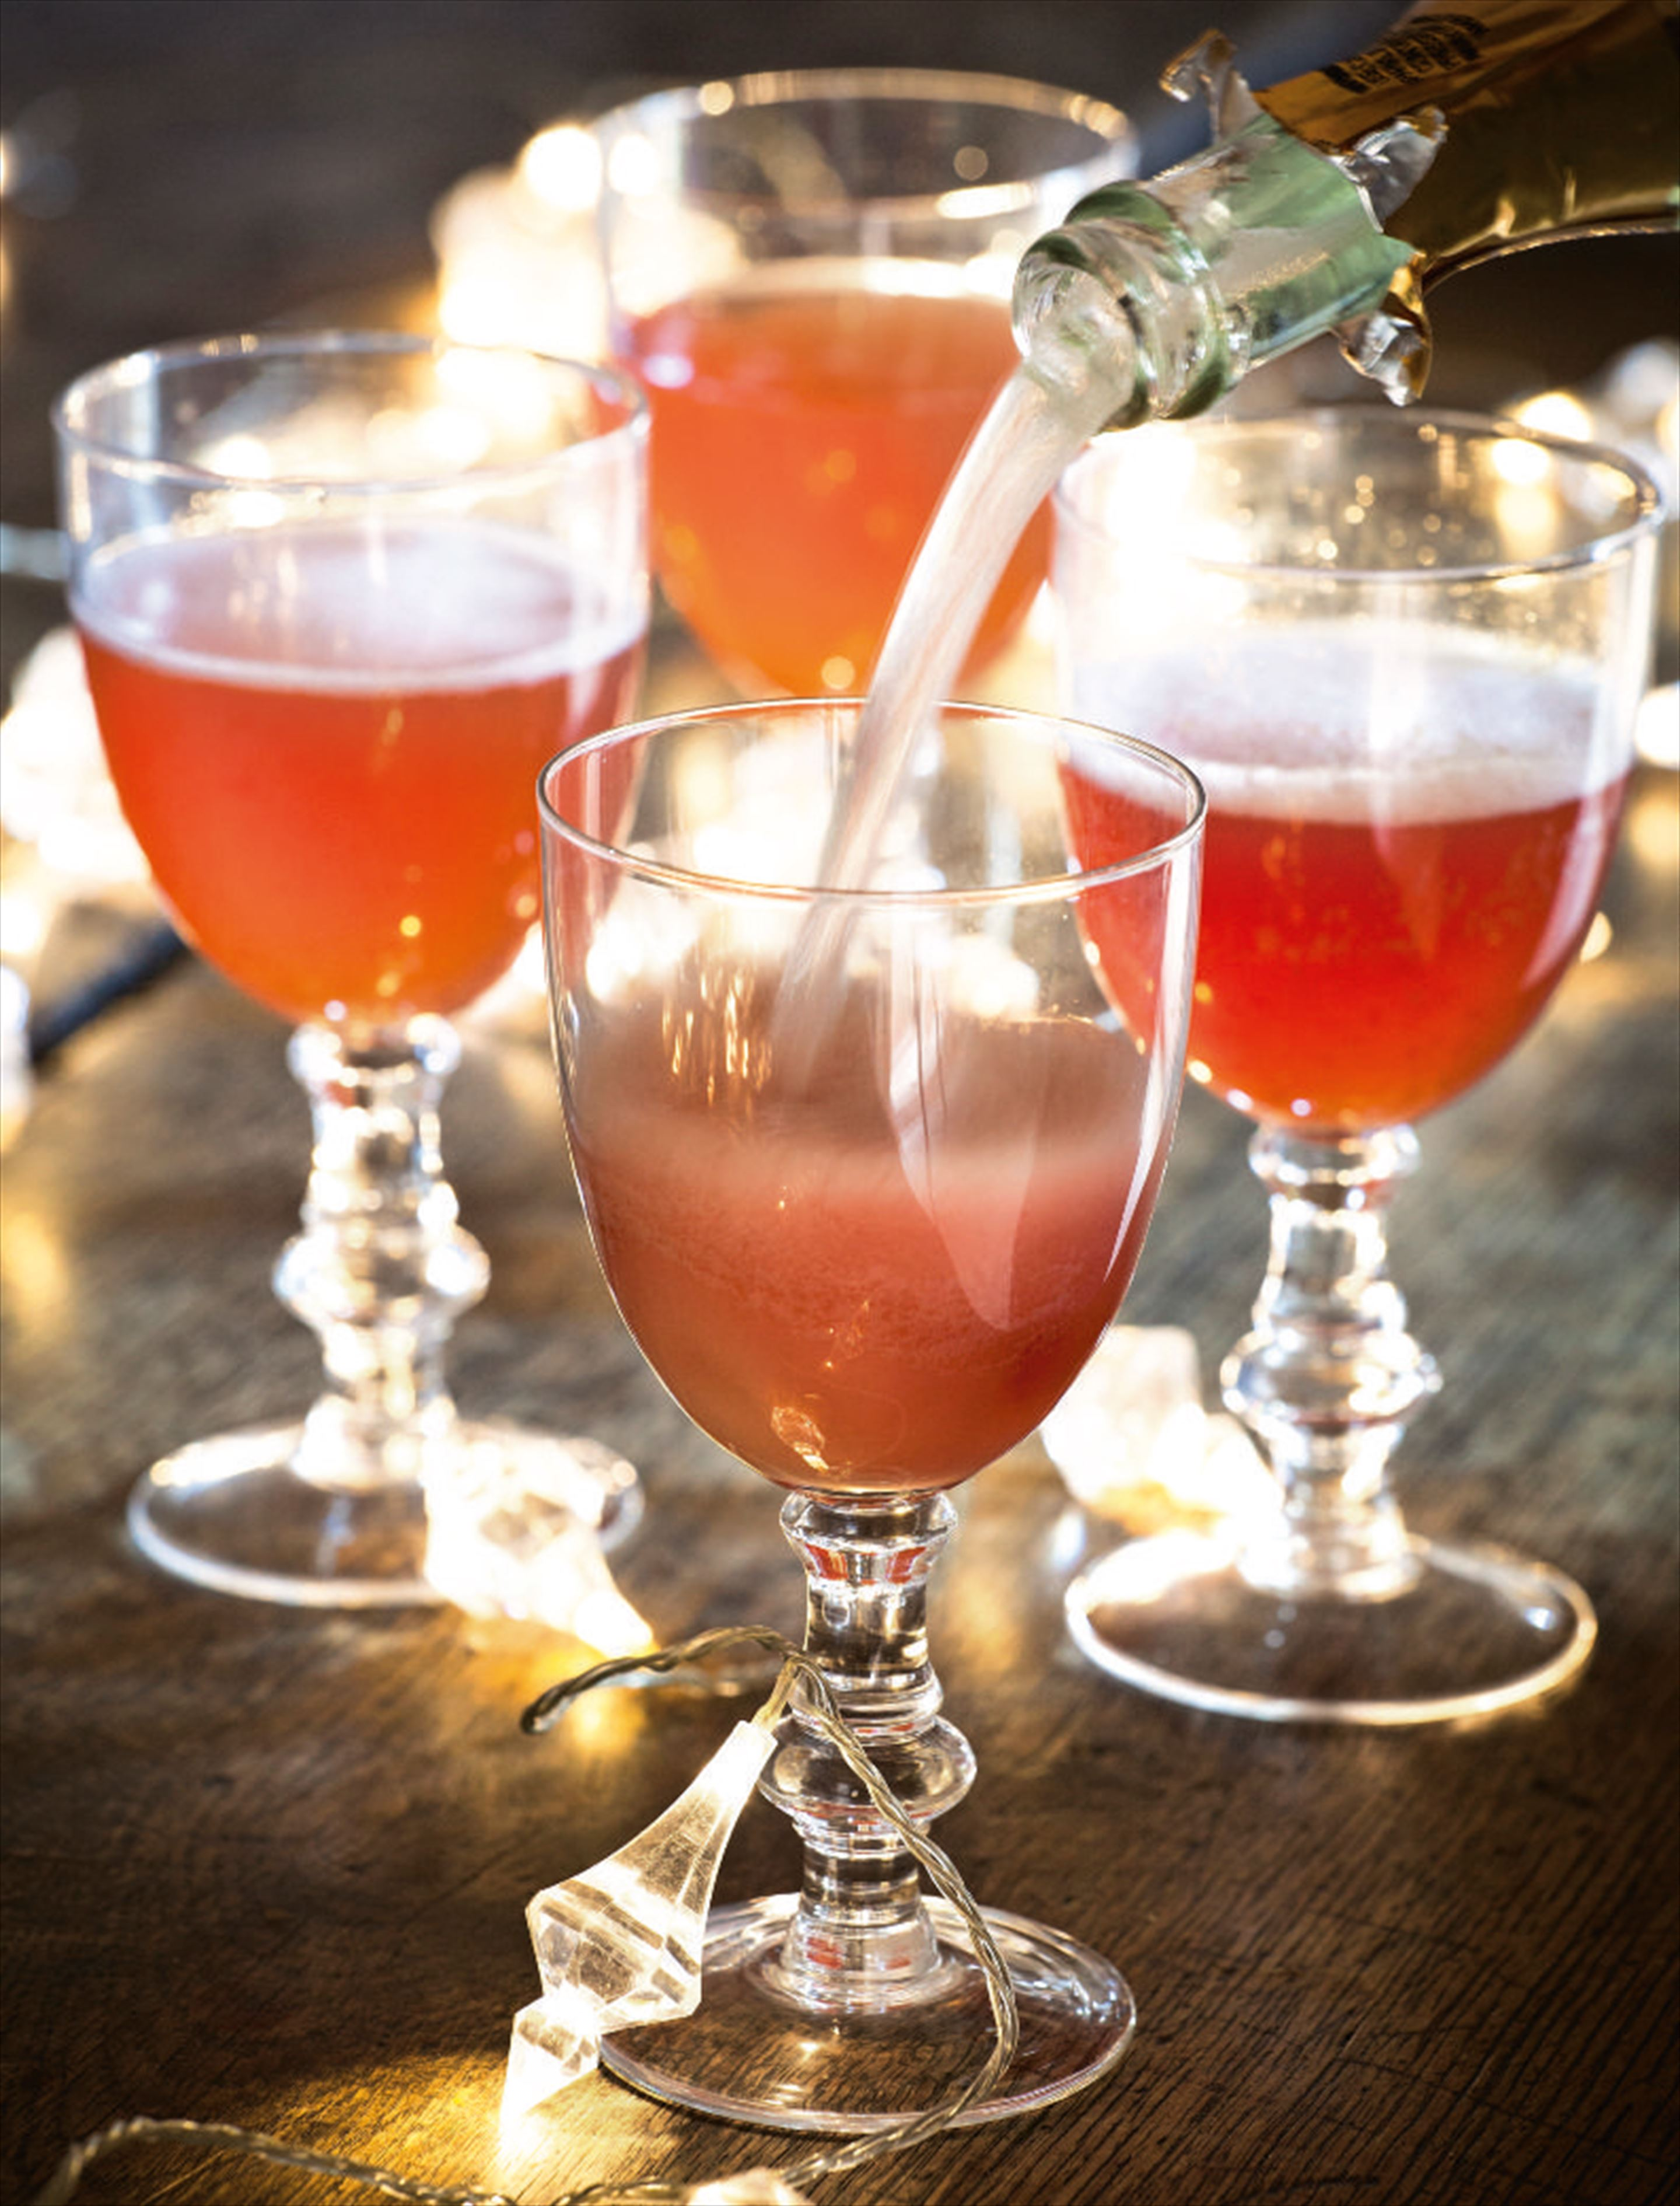 Pomegranate bellinis